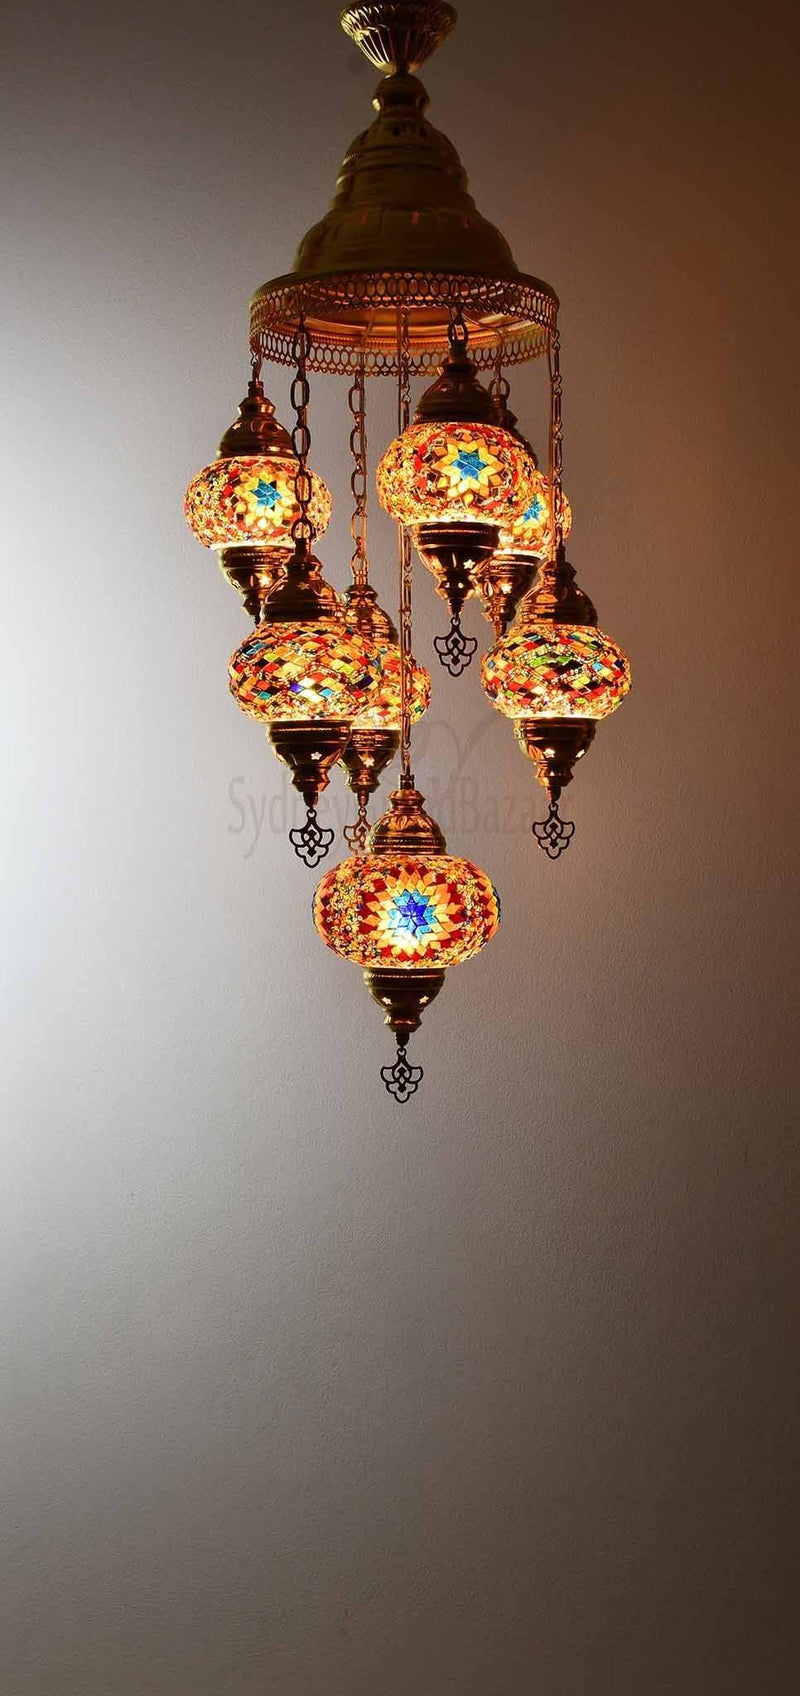 Turkish Mosaic Pendant Light 7 Globes in Gold Lighting Sydney Grand Bazaar Multicolour 5